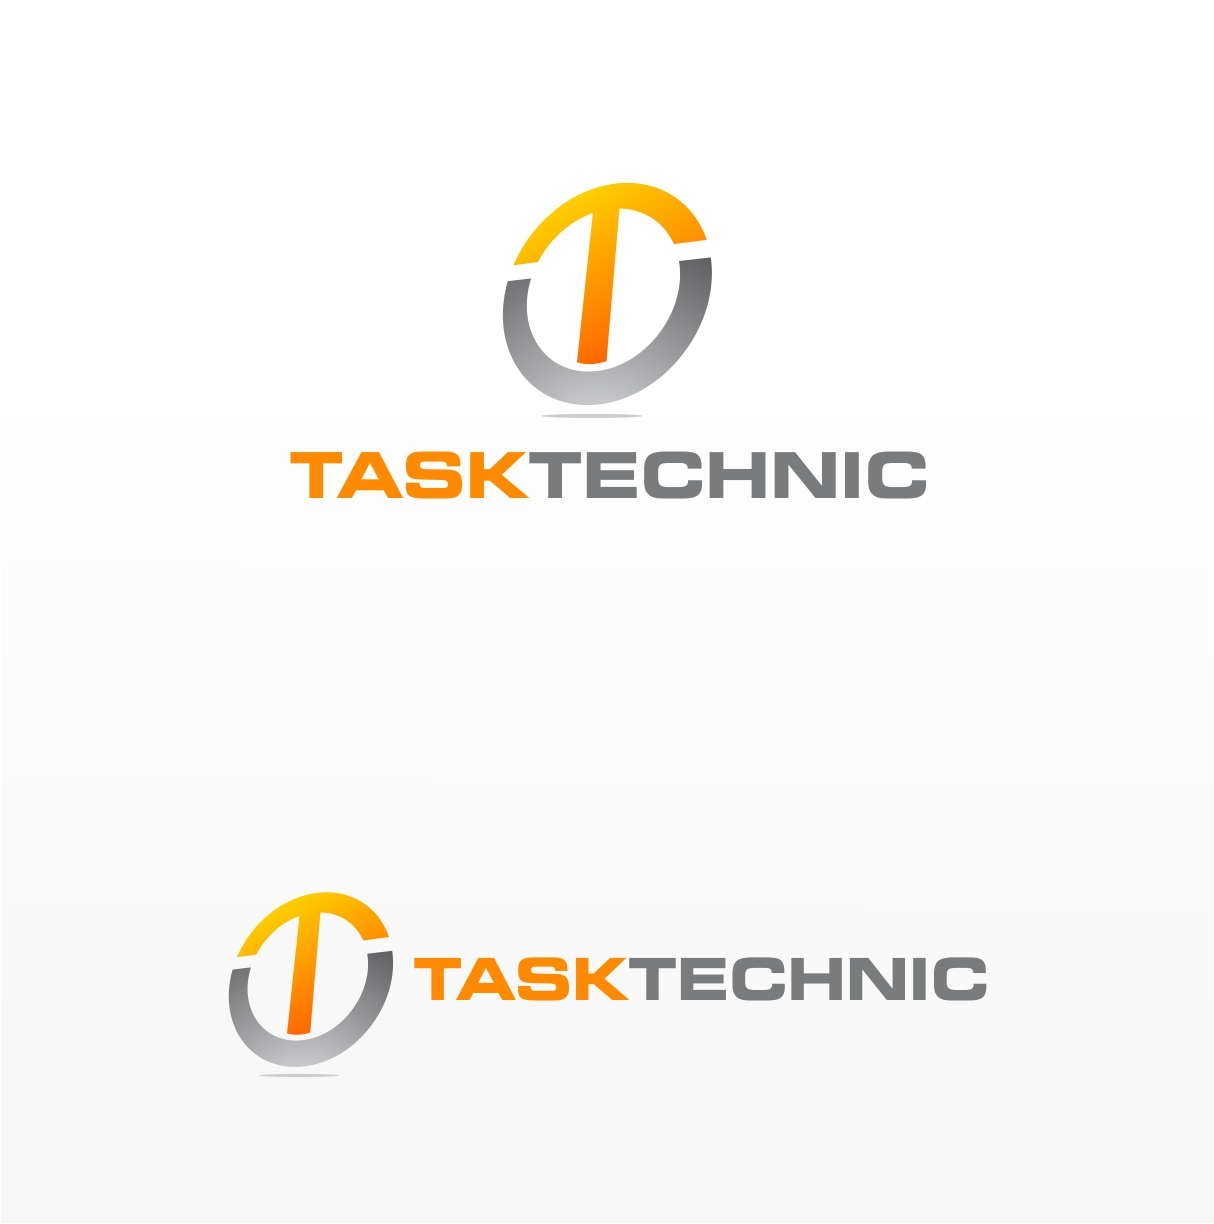 Logo Design by haidu - Entry No. 32 in the Logo Design Contest Unique Logo Design Wanted for Task Technic.